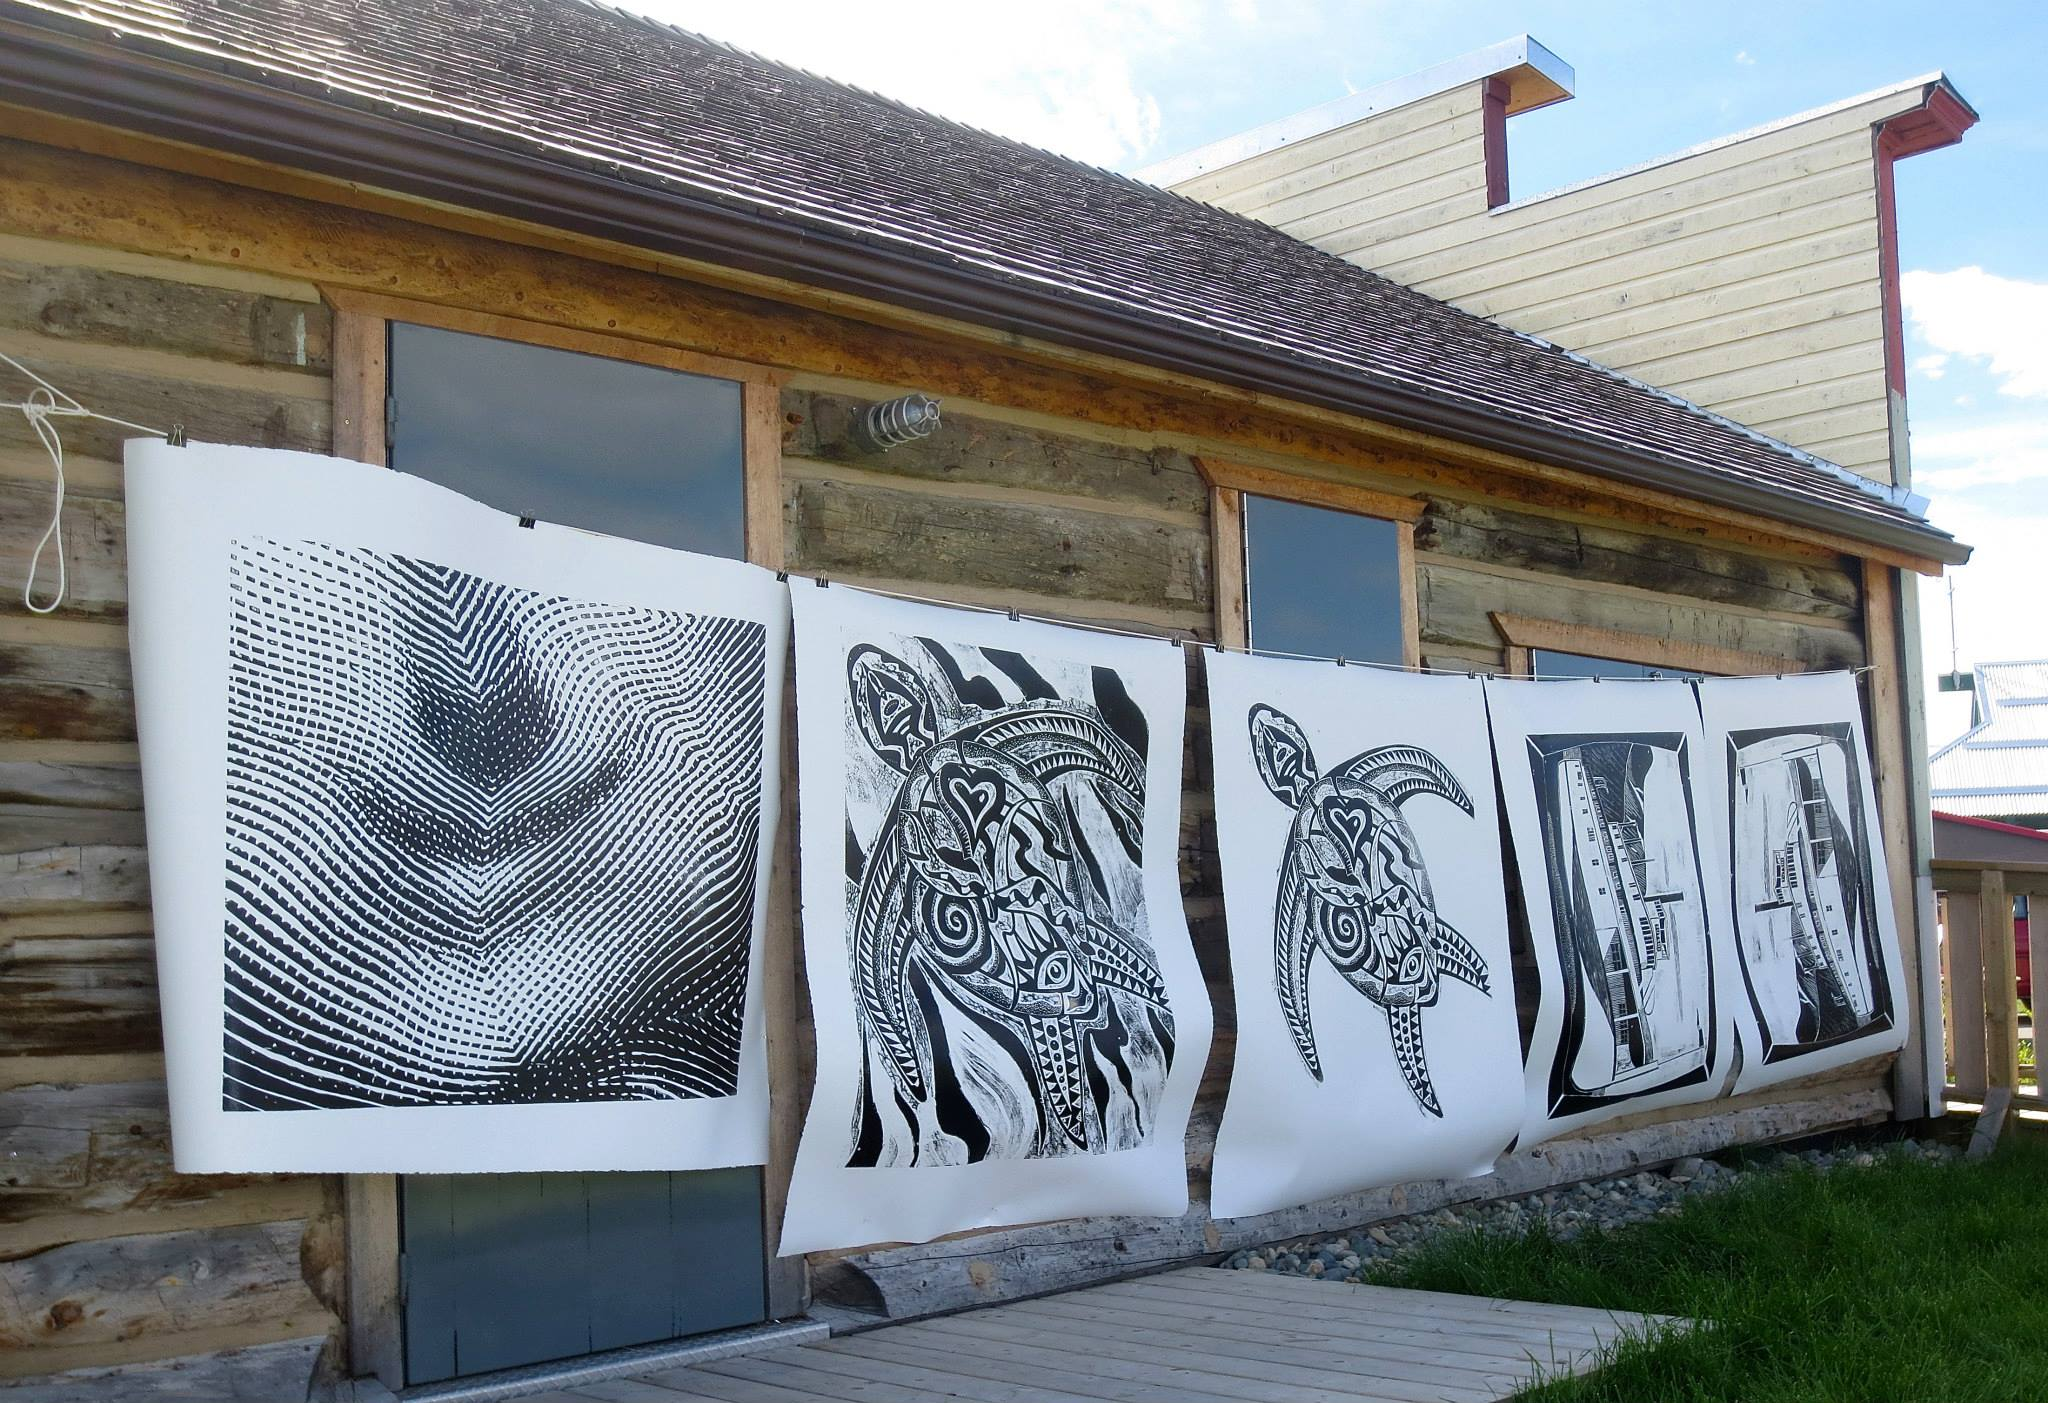 steamroller prints hanging to dry